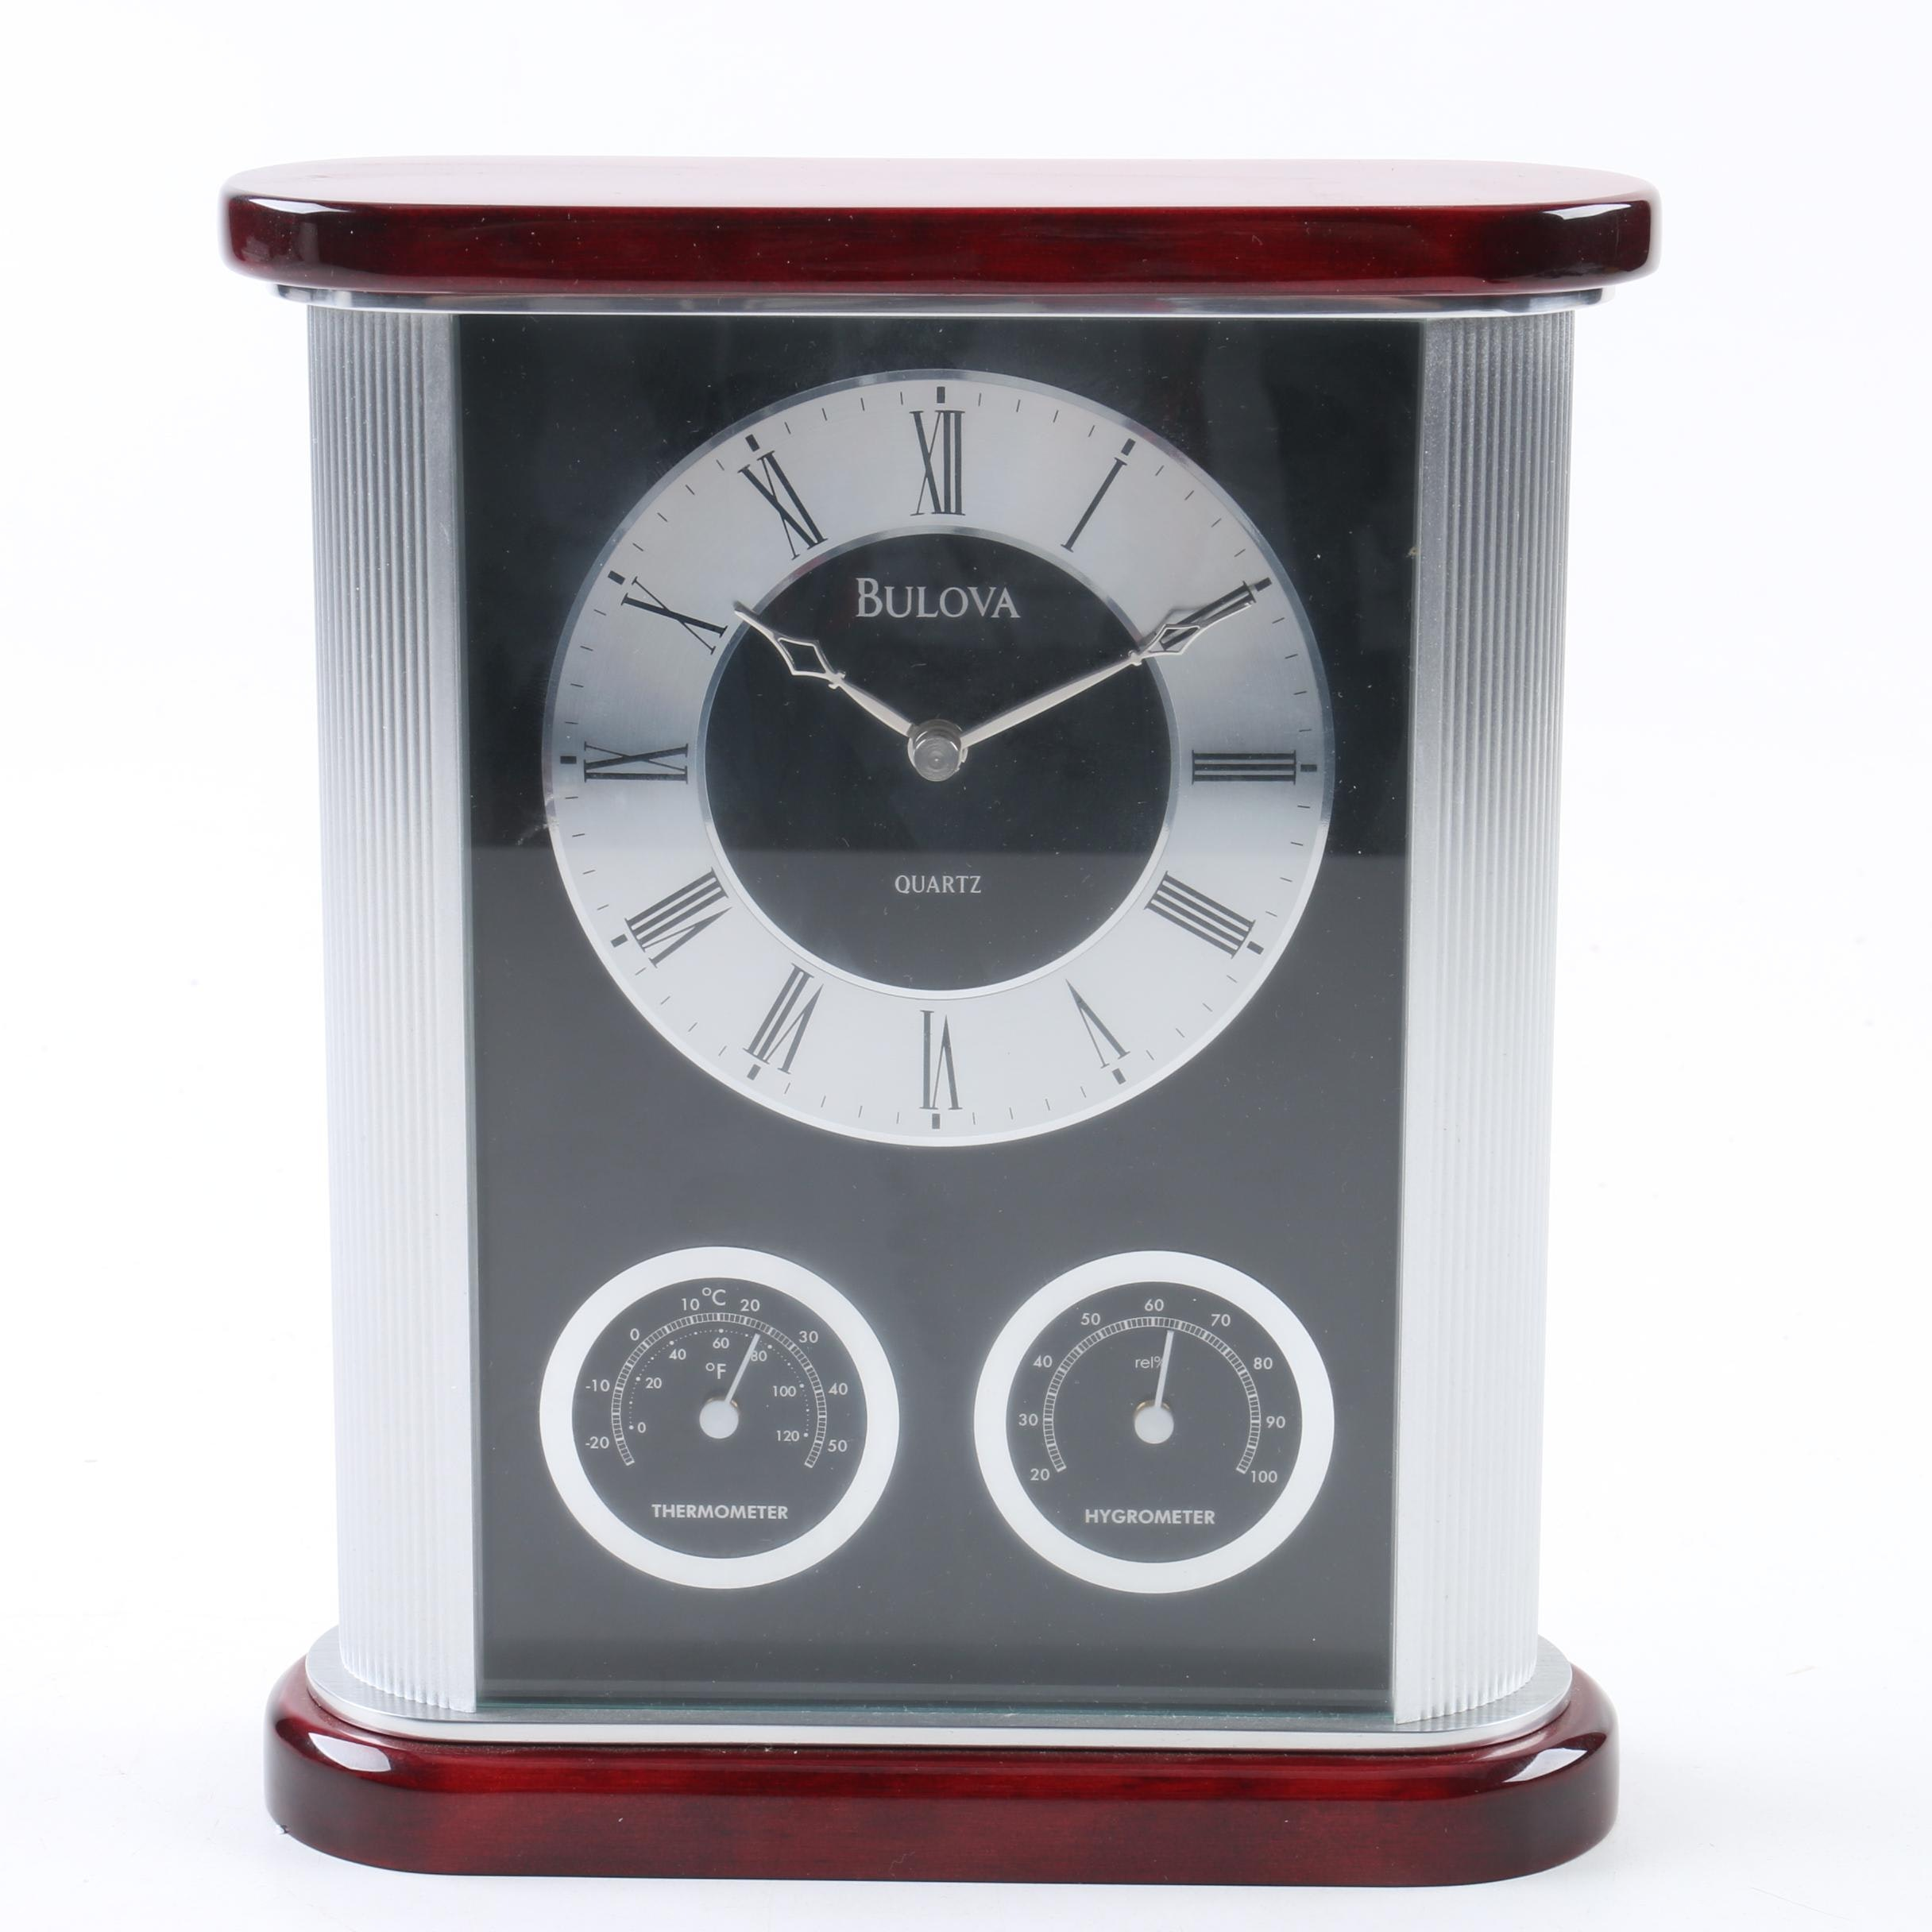 Bulova Modern Table Clock with Hygrometer and Thermometer